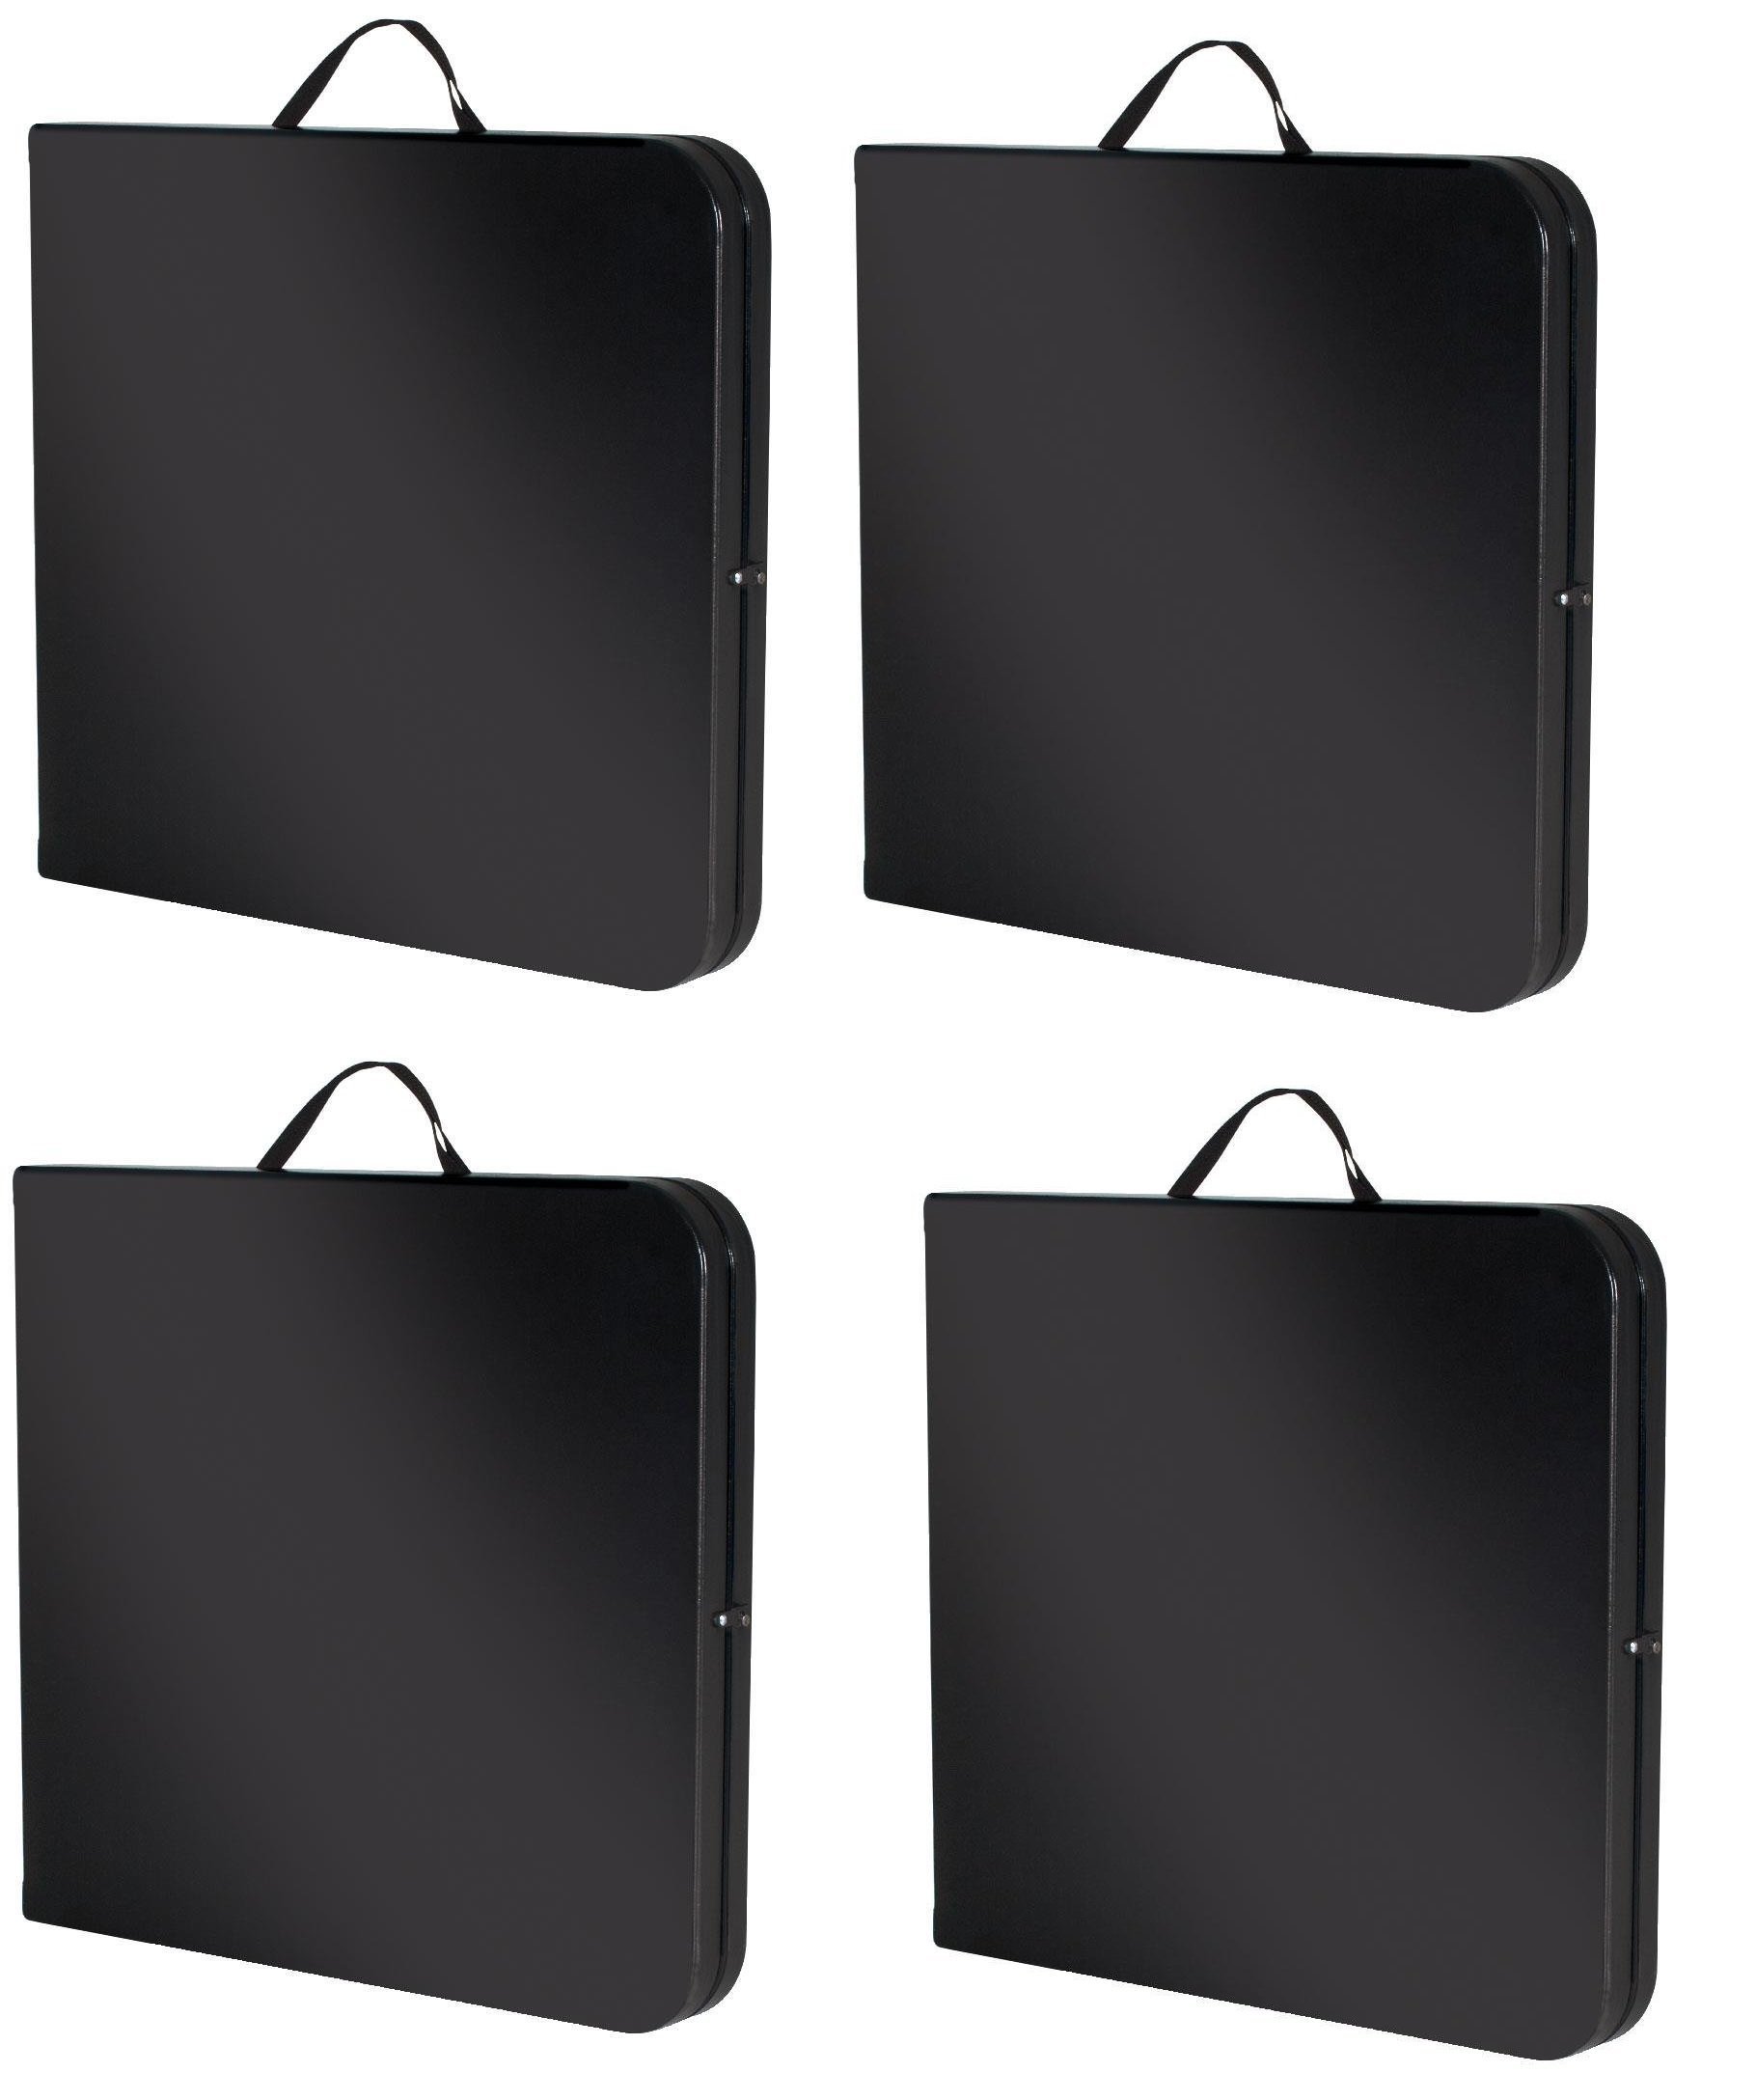 Cosco Deluxe 6 foot x 30 inch Fold-in-Half Blow Molded Folding Table YeiNsw, Black, (4 Pack)